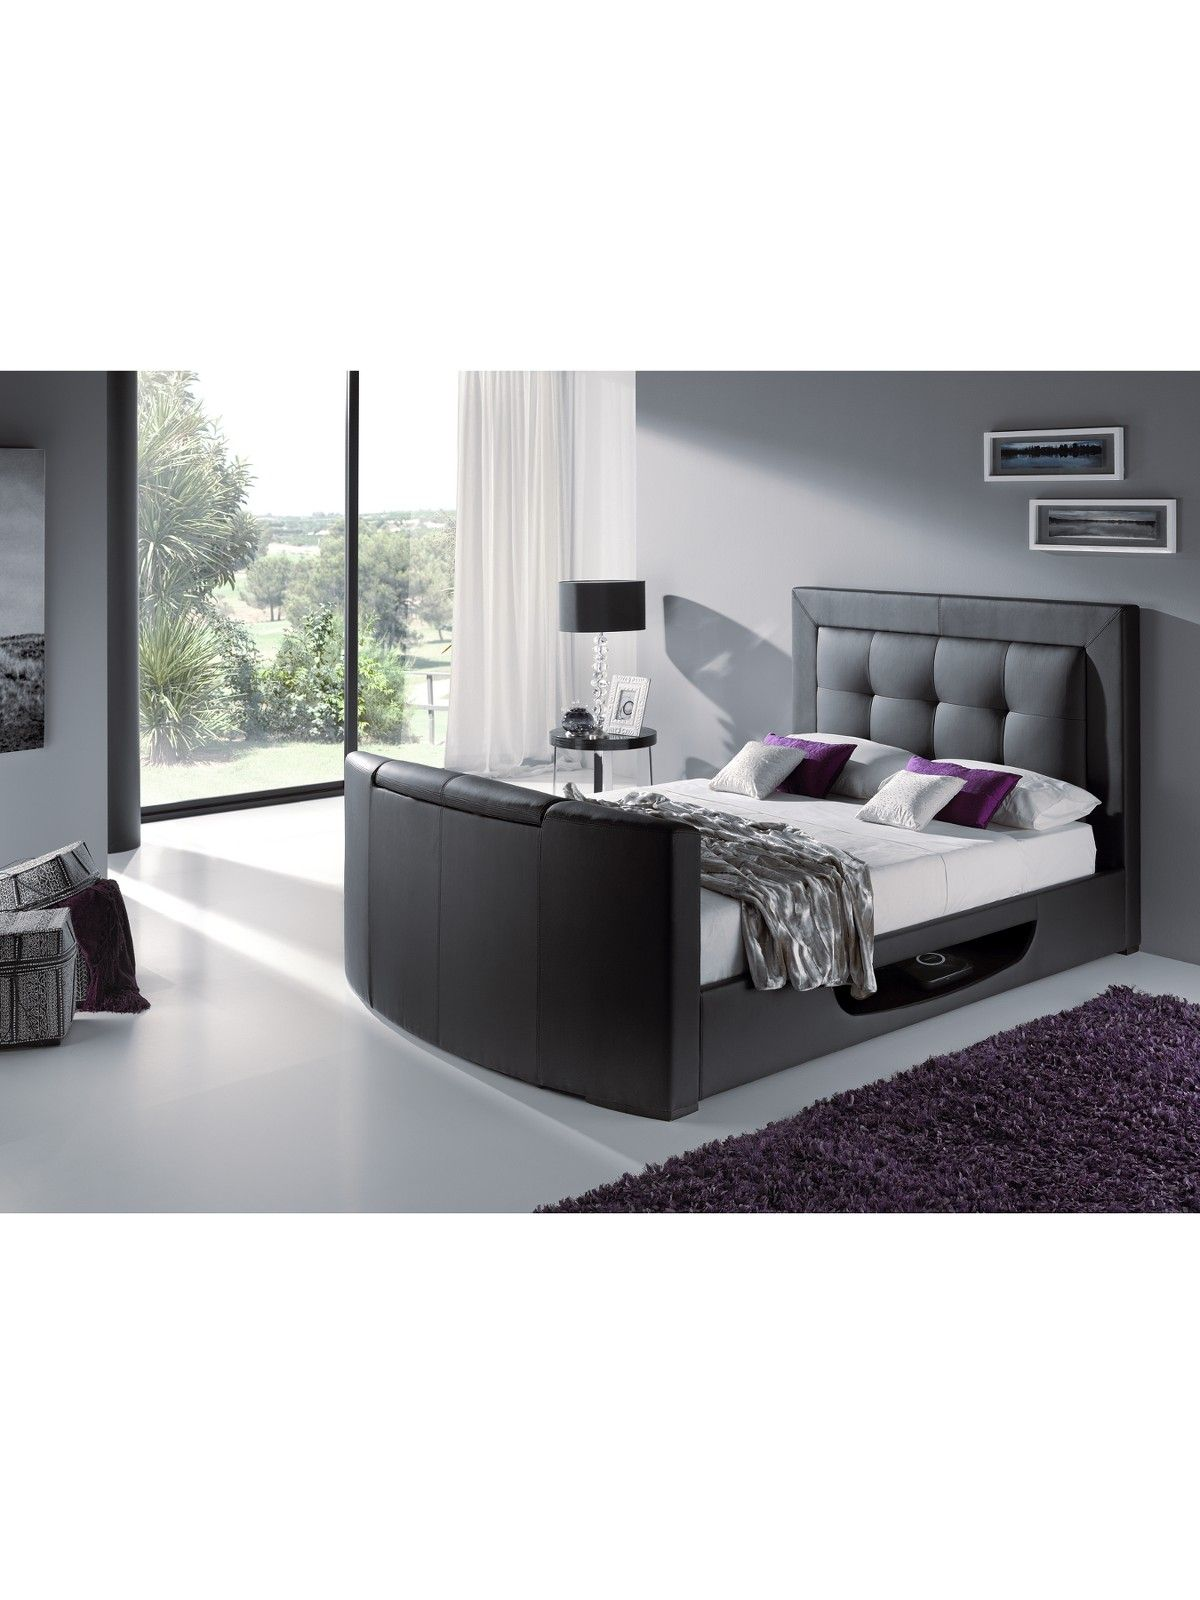 Womens Mens And Kids Fashion Furniture Electricals More Home